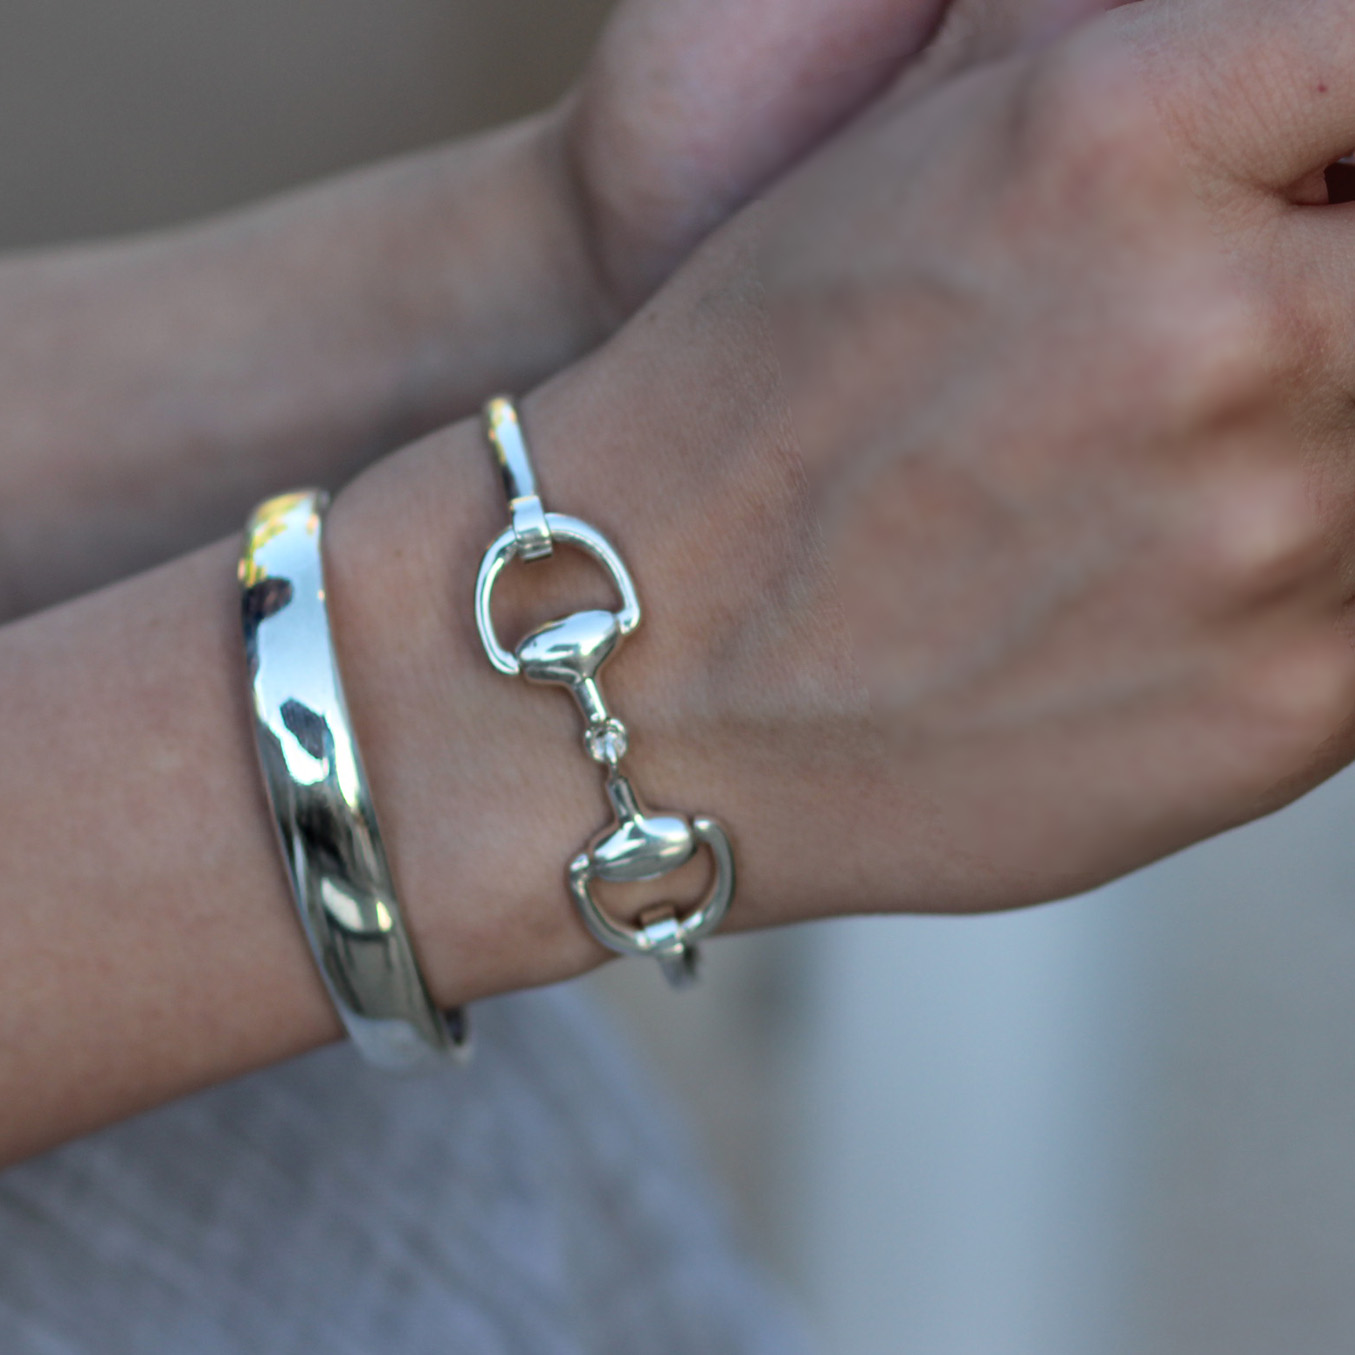 small-wrist-bangle-opens-caracol-.jpg